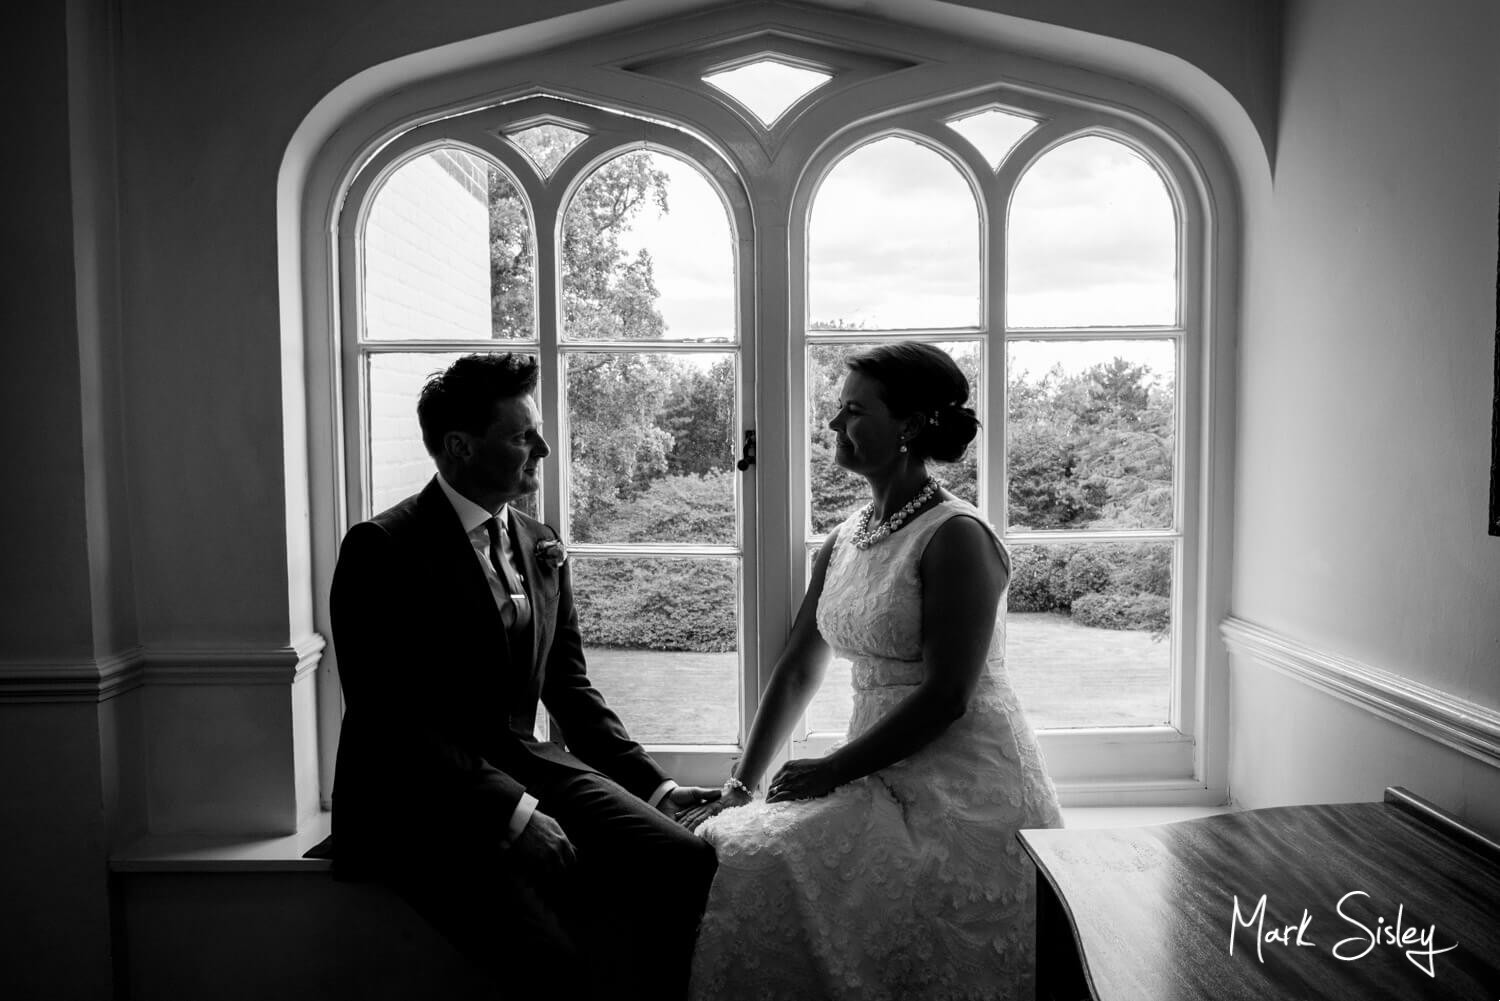 Taplow House Hotel wedding photos in an arched window